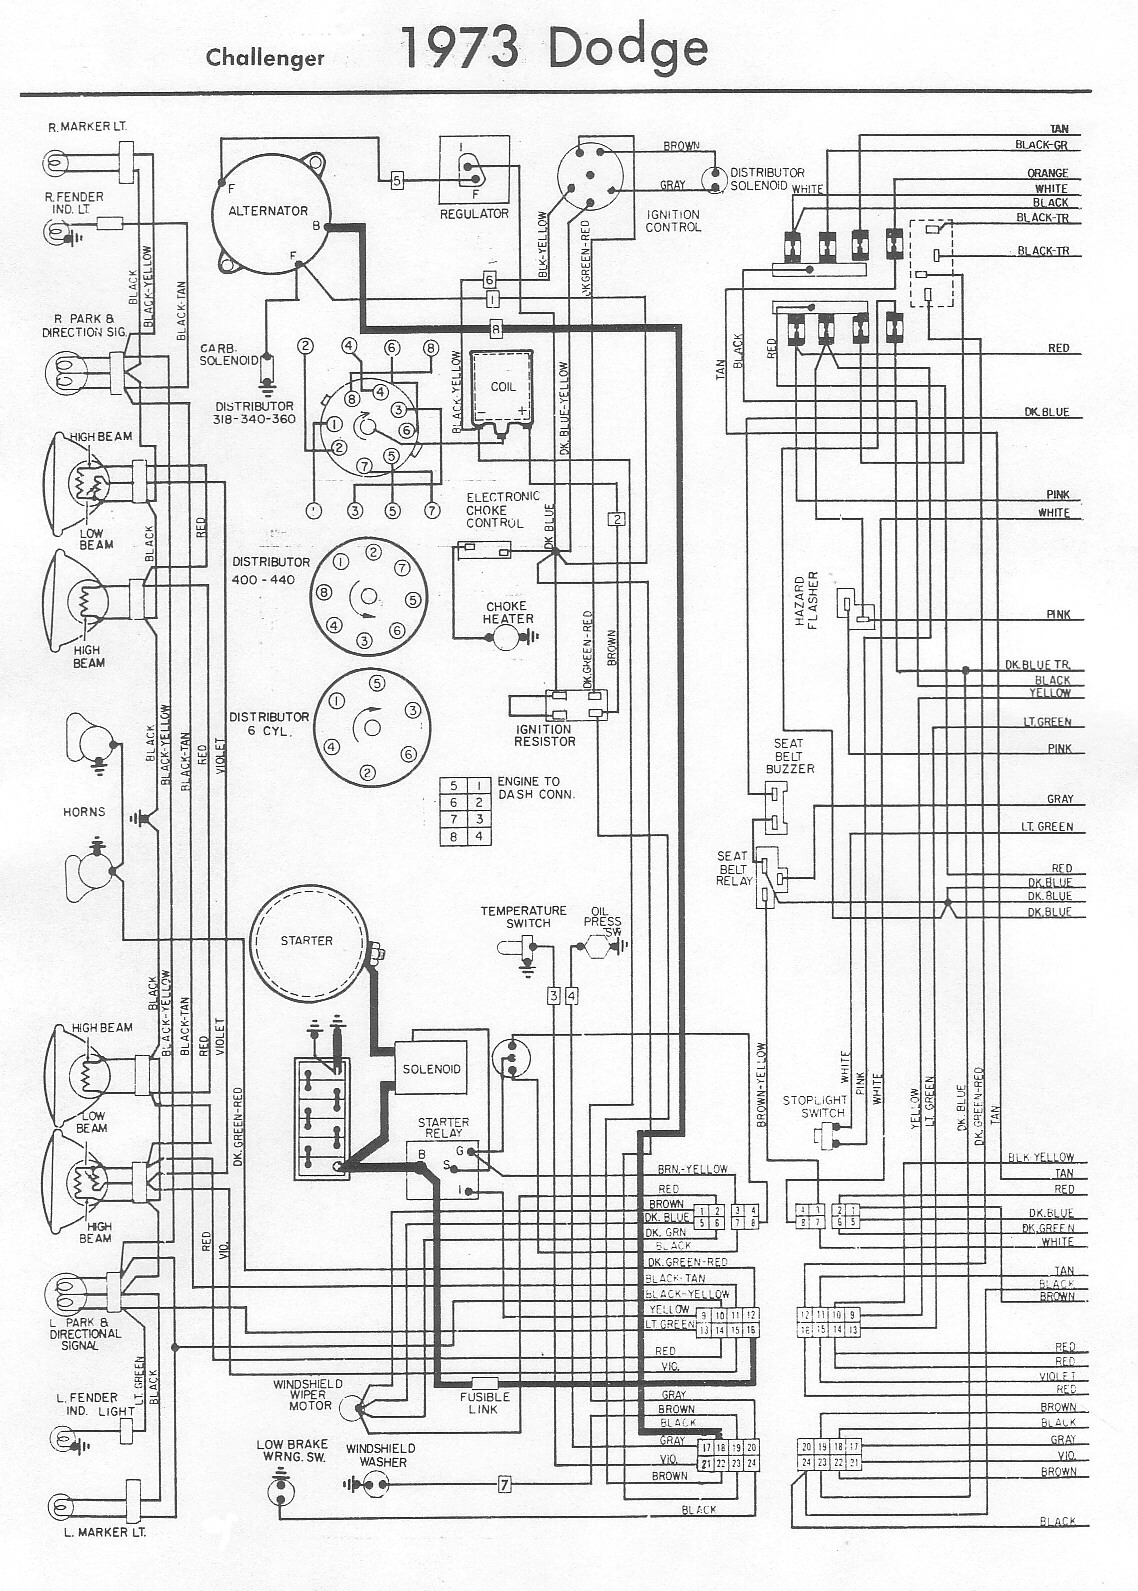 Dodge Challenger Wiring Diagram 1974 Charger Image Not Found Or Type Unknown